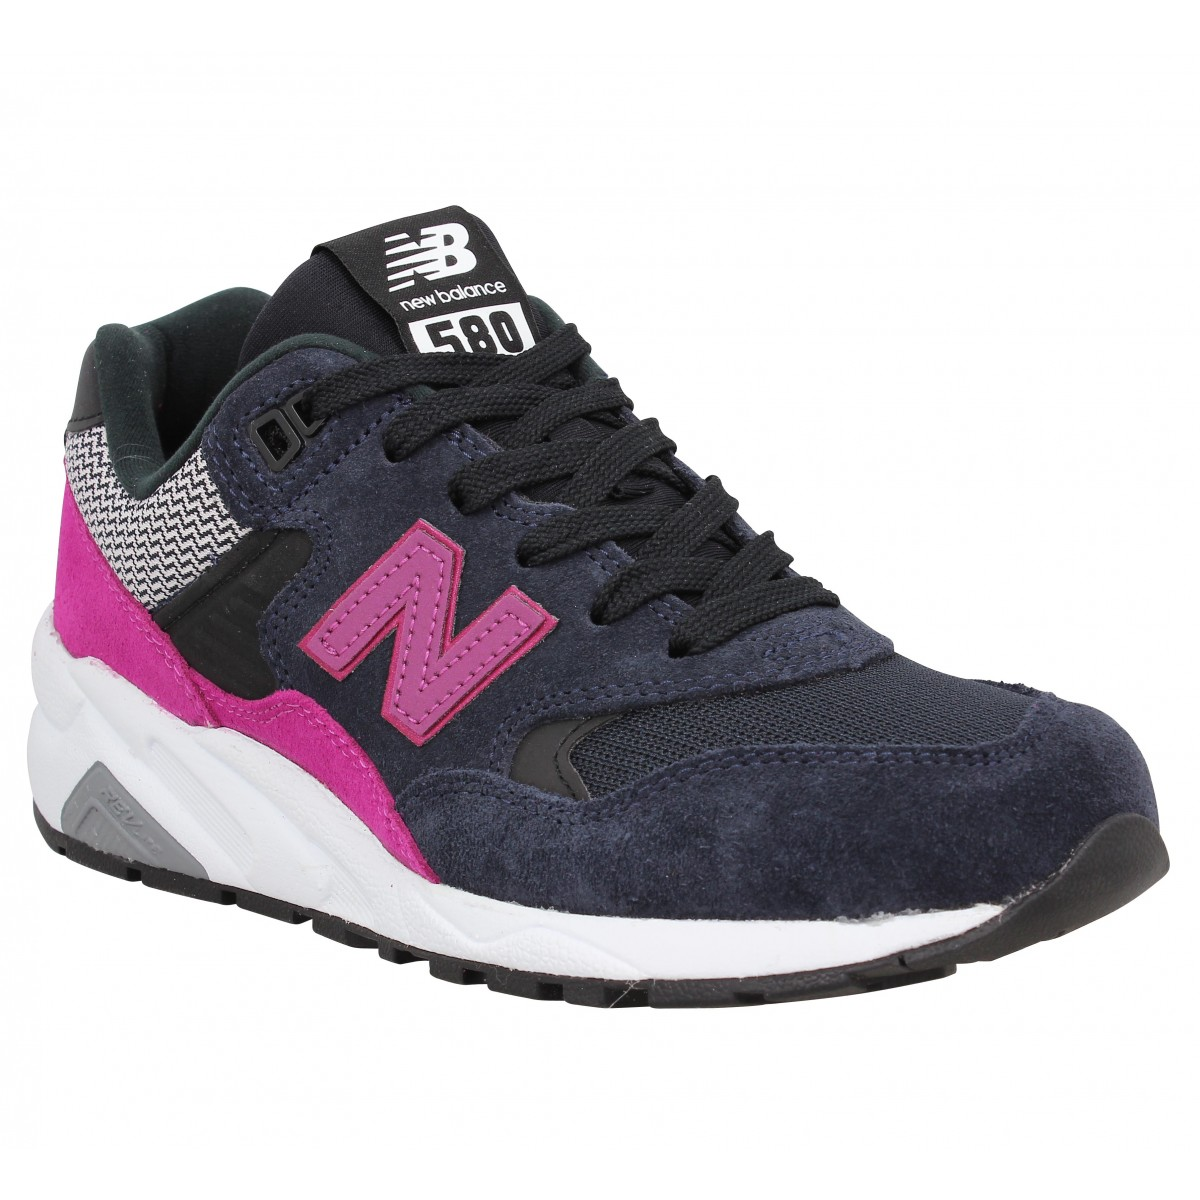 New Balance Marque 580-36,5-violet